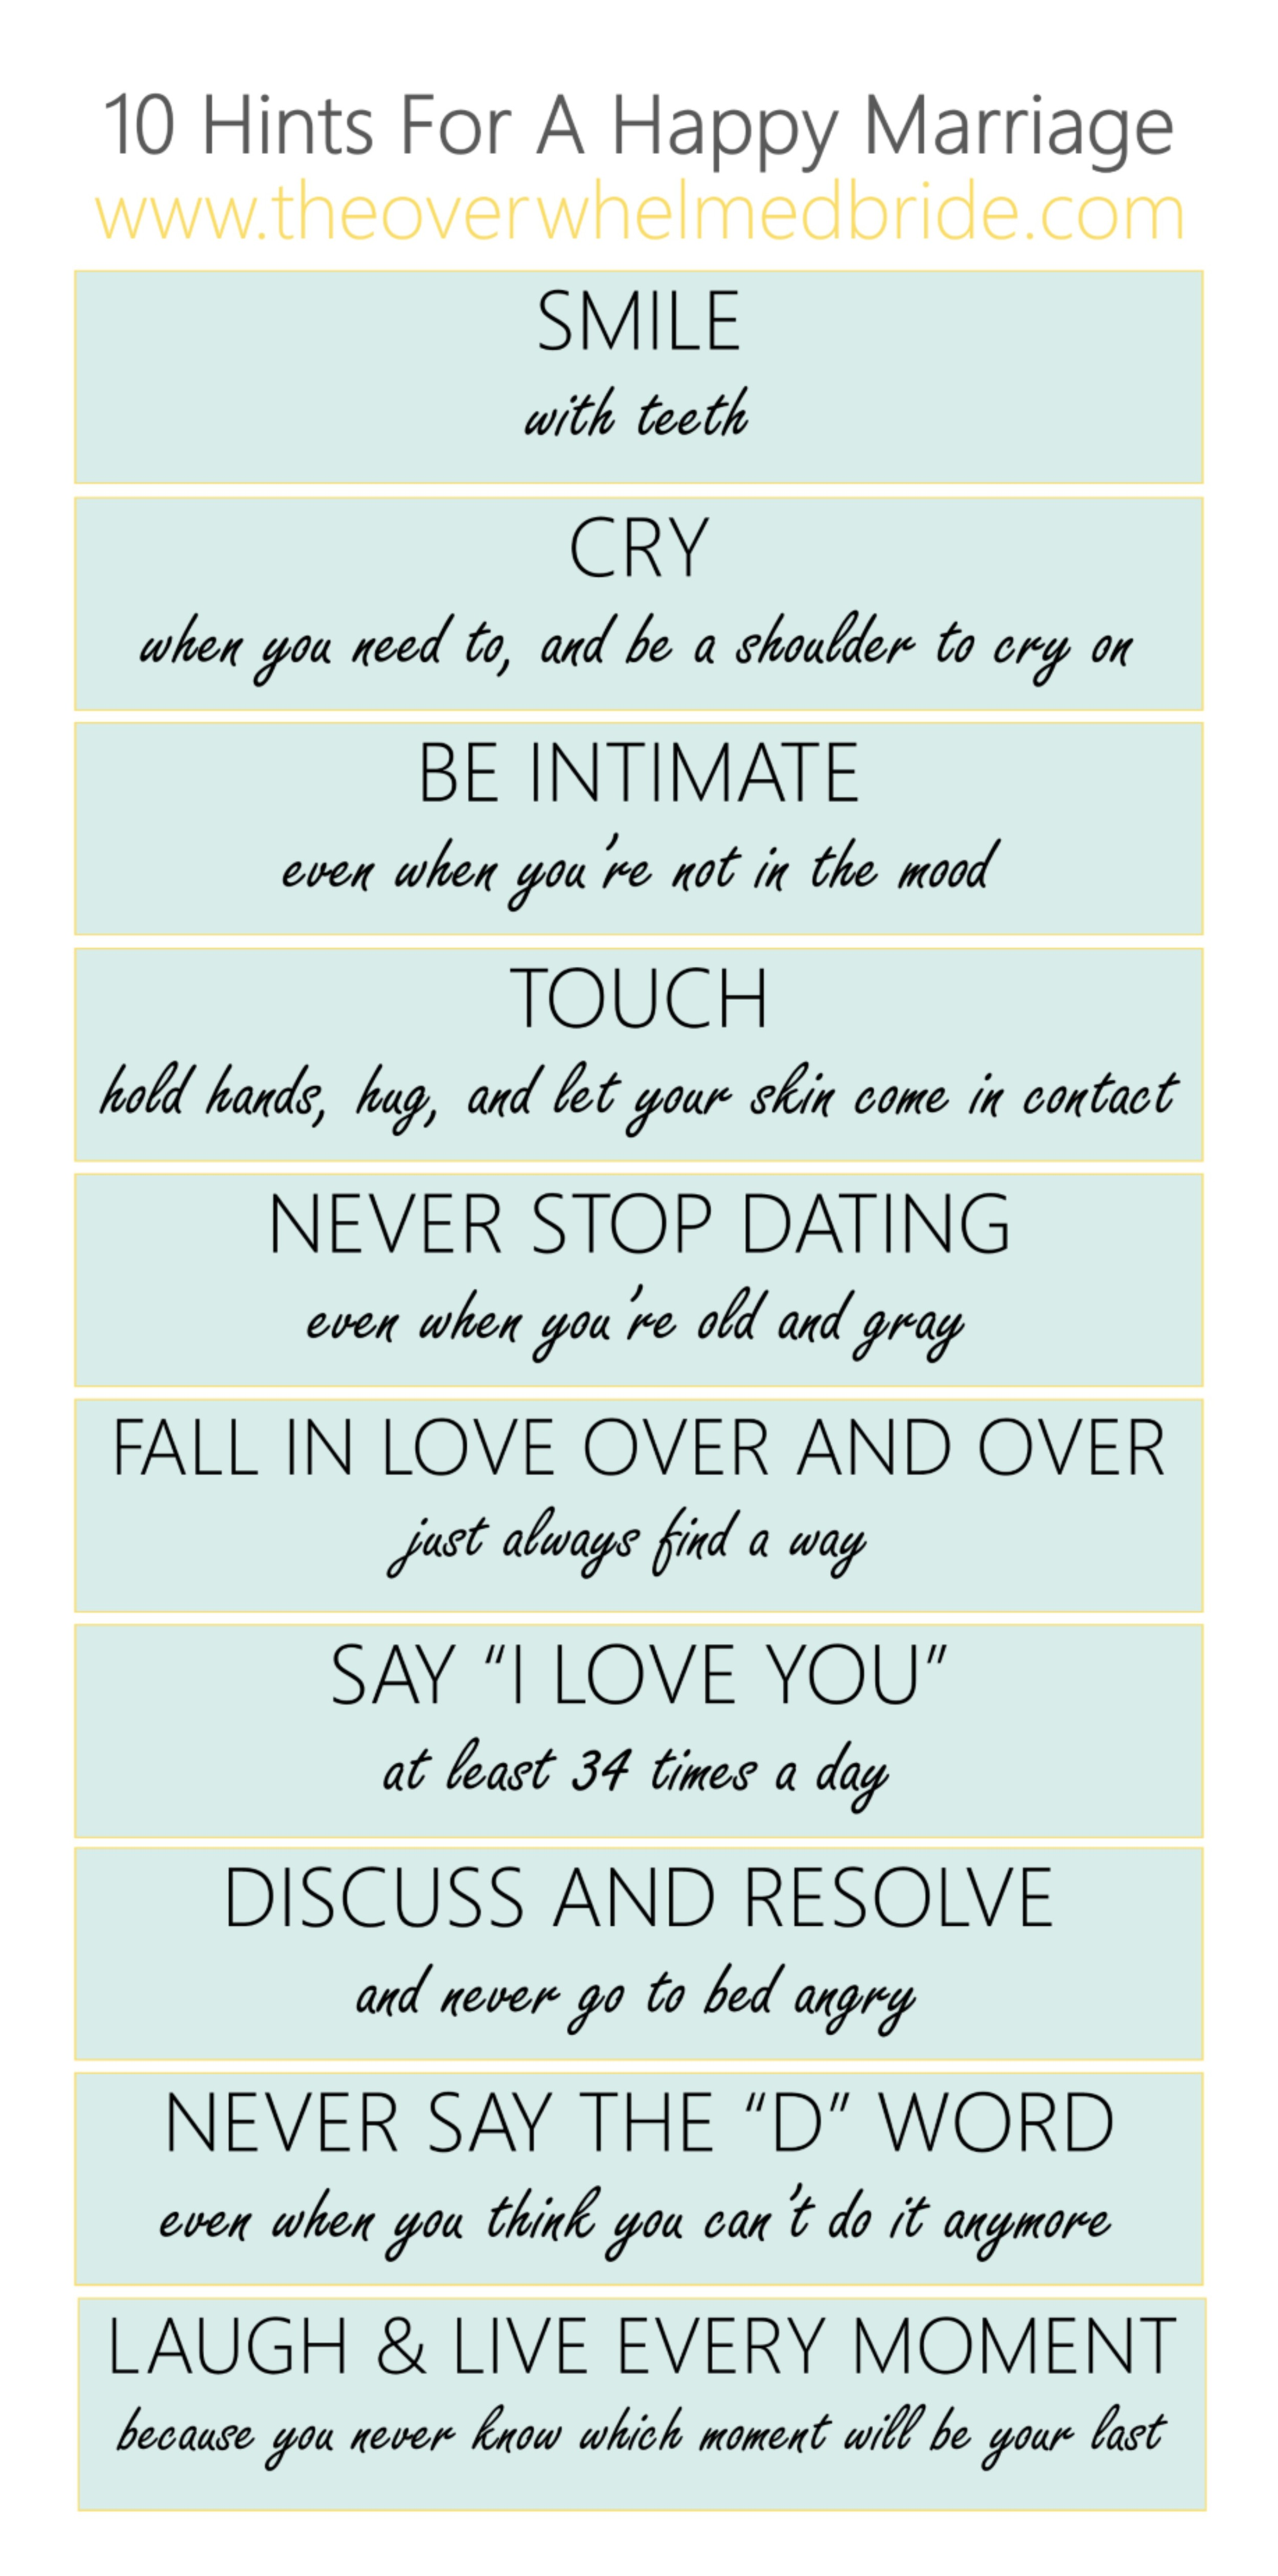 10 hints for a happy marriage